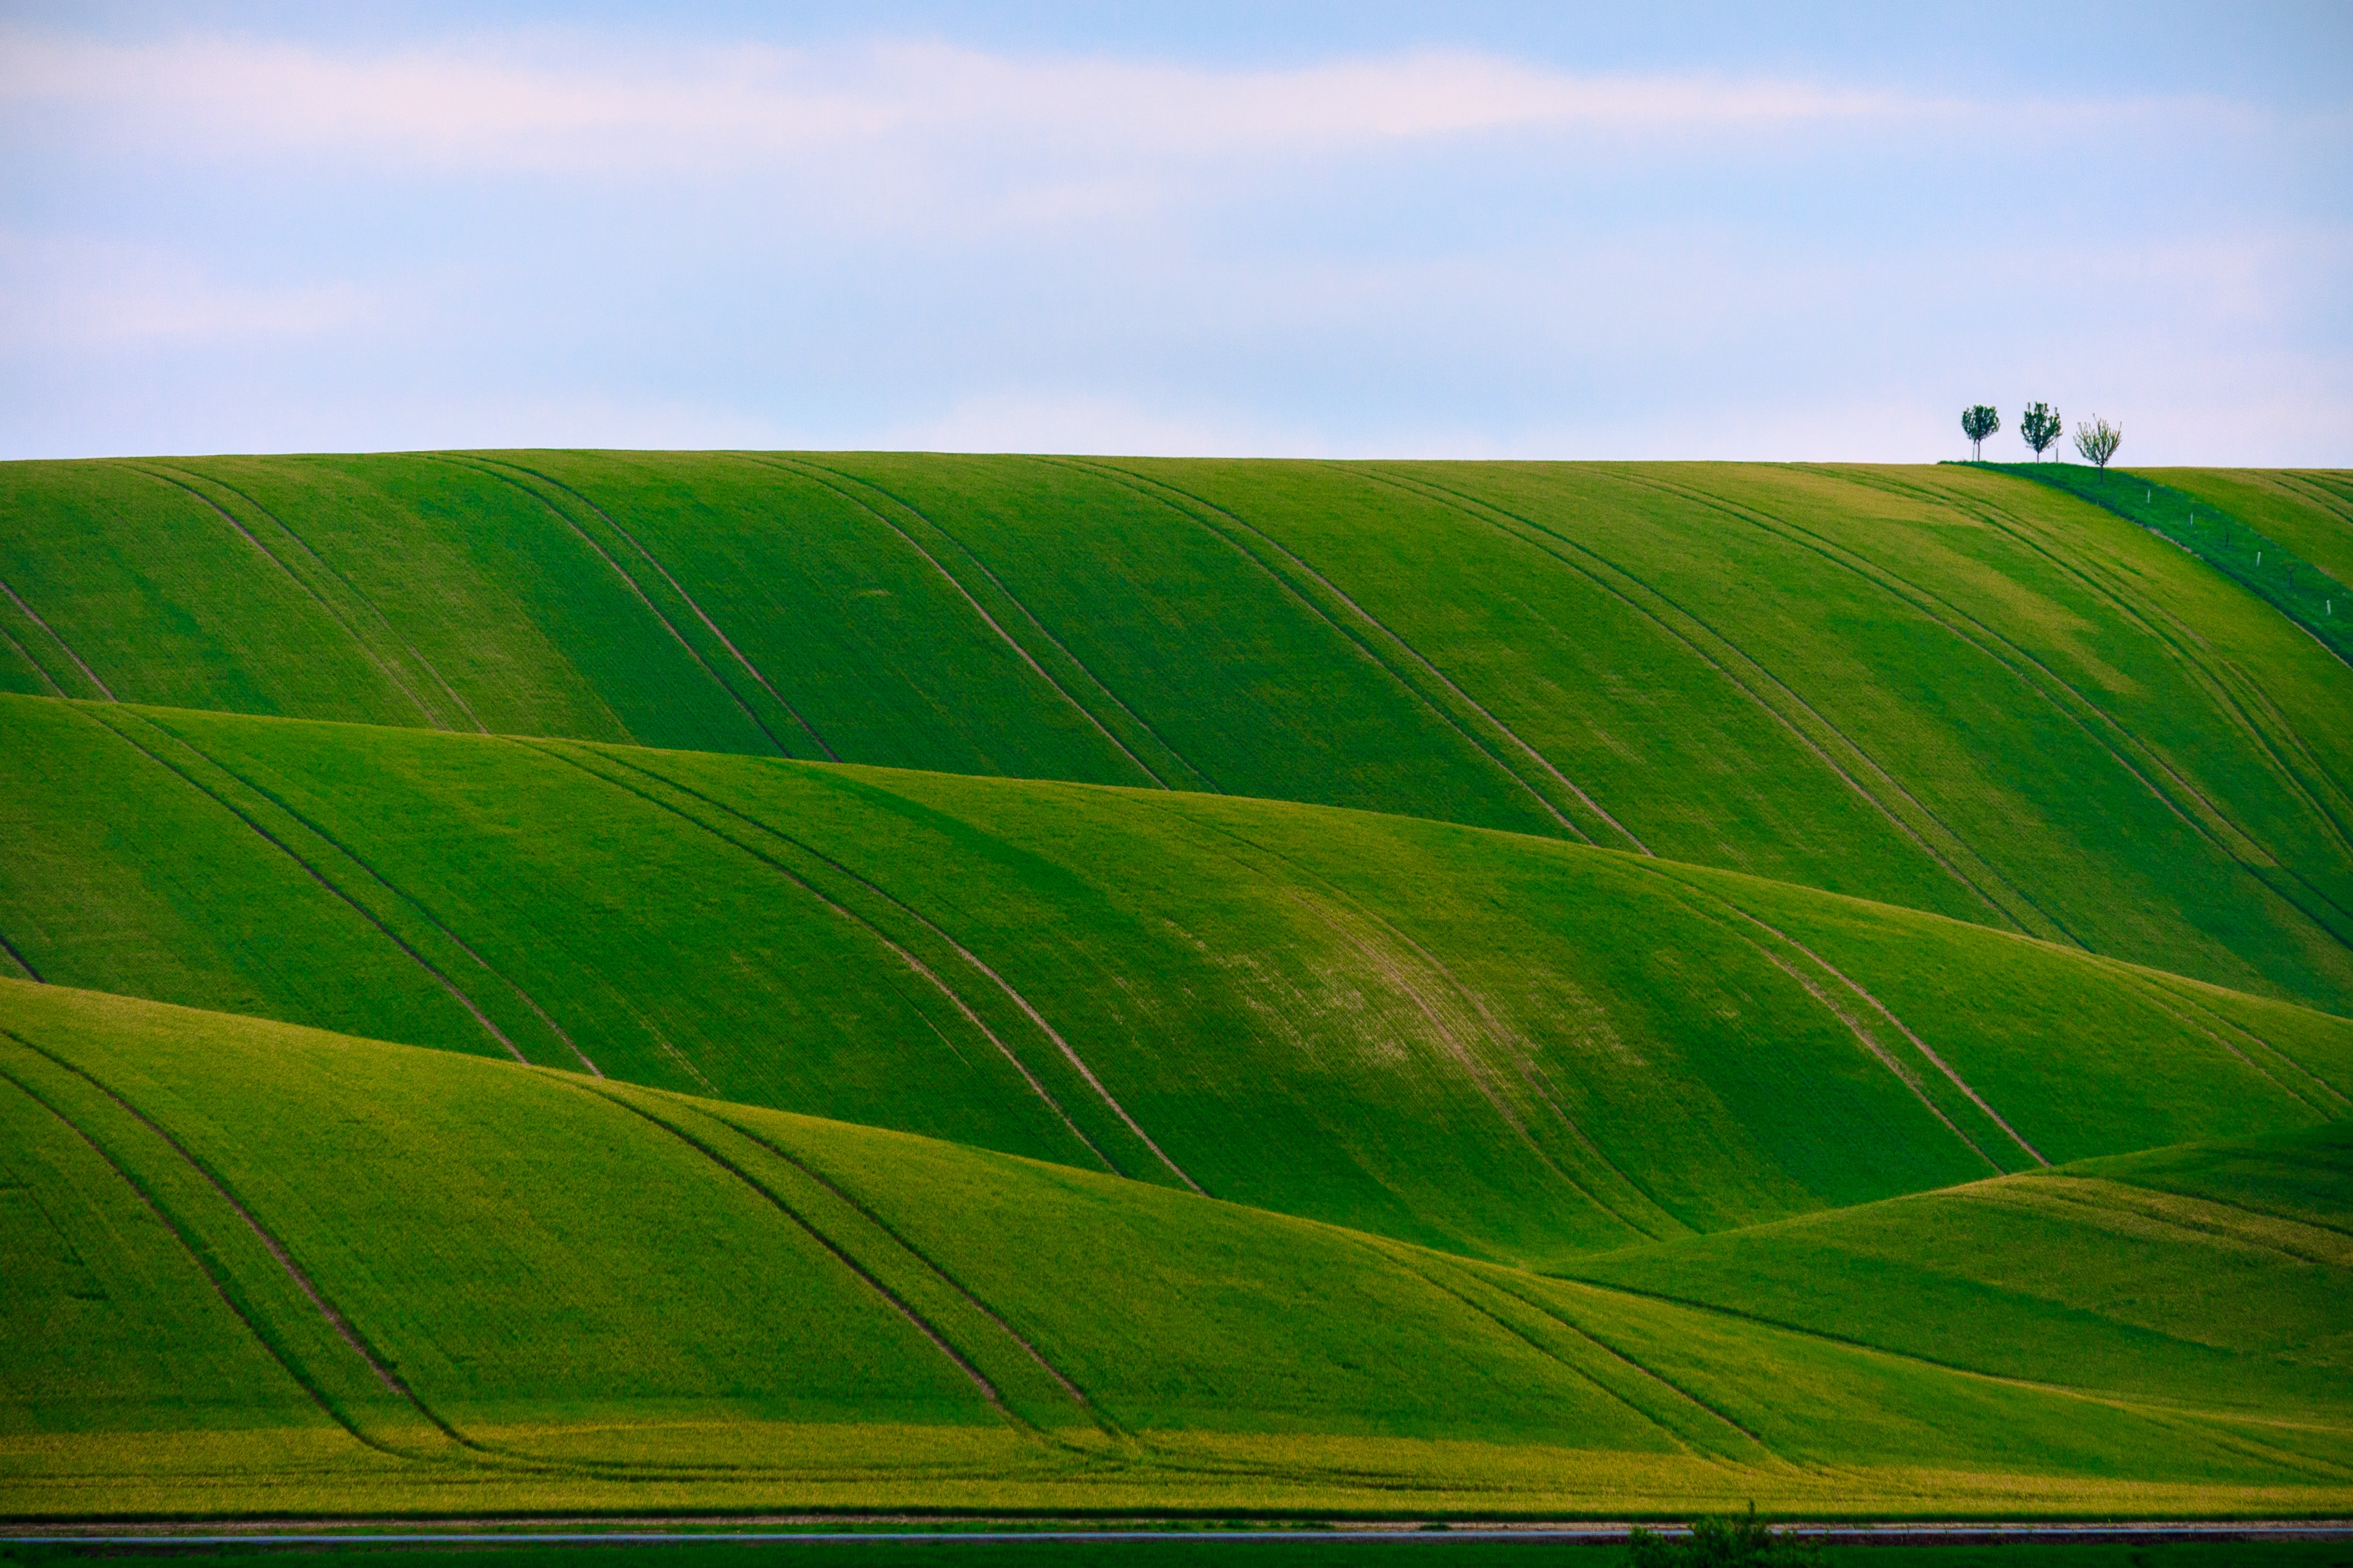 panorama photography of green hills